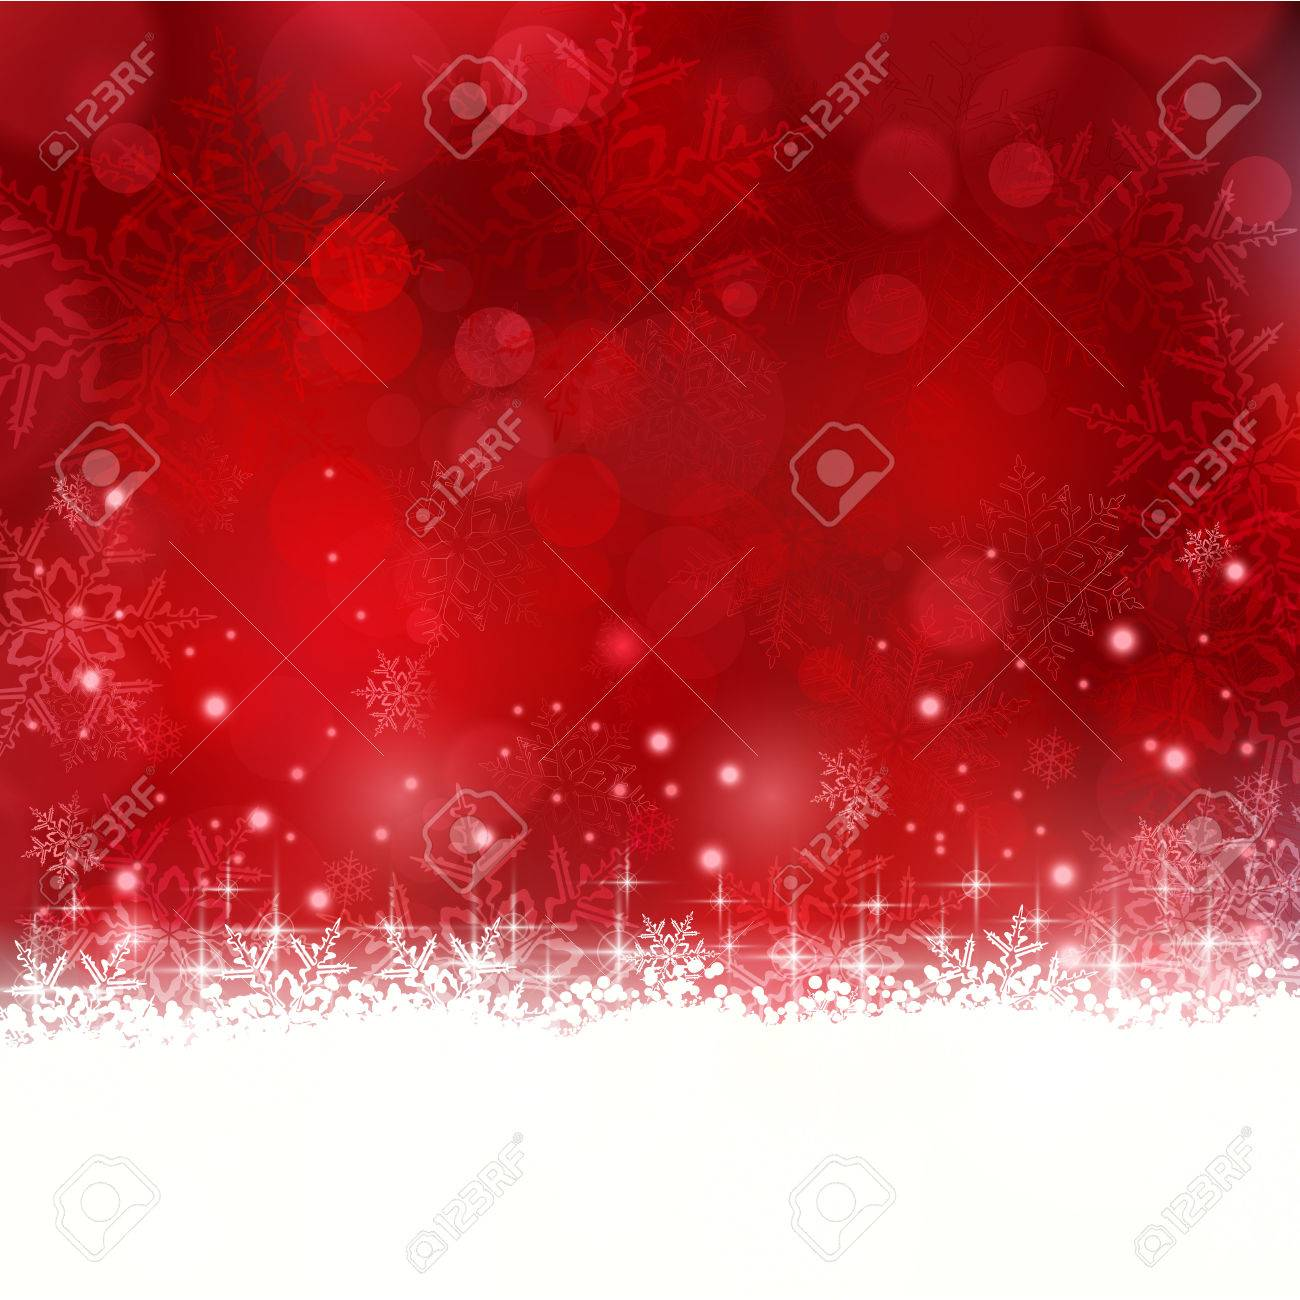 Shiny light effects with blurry lights and glittering snowflakes in shades of red and a wavy contour. Stock Vector - 23848767